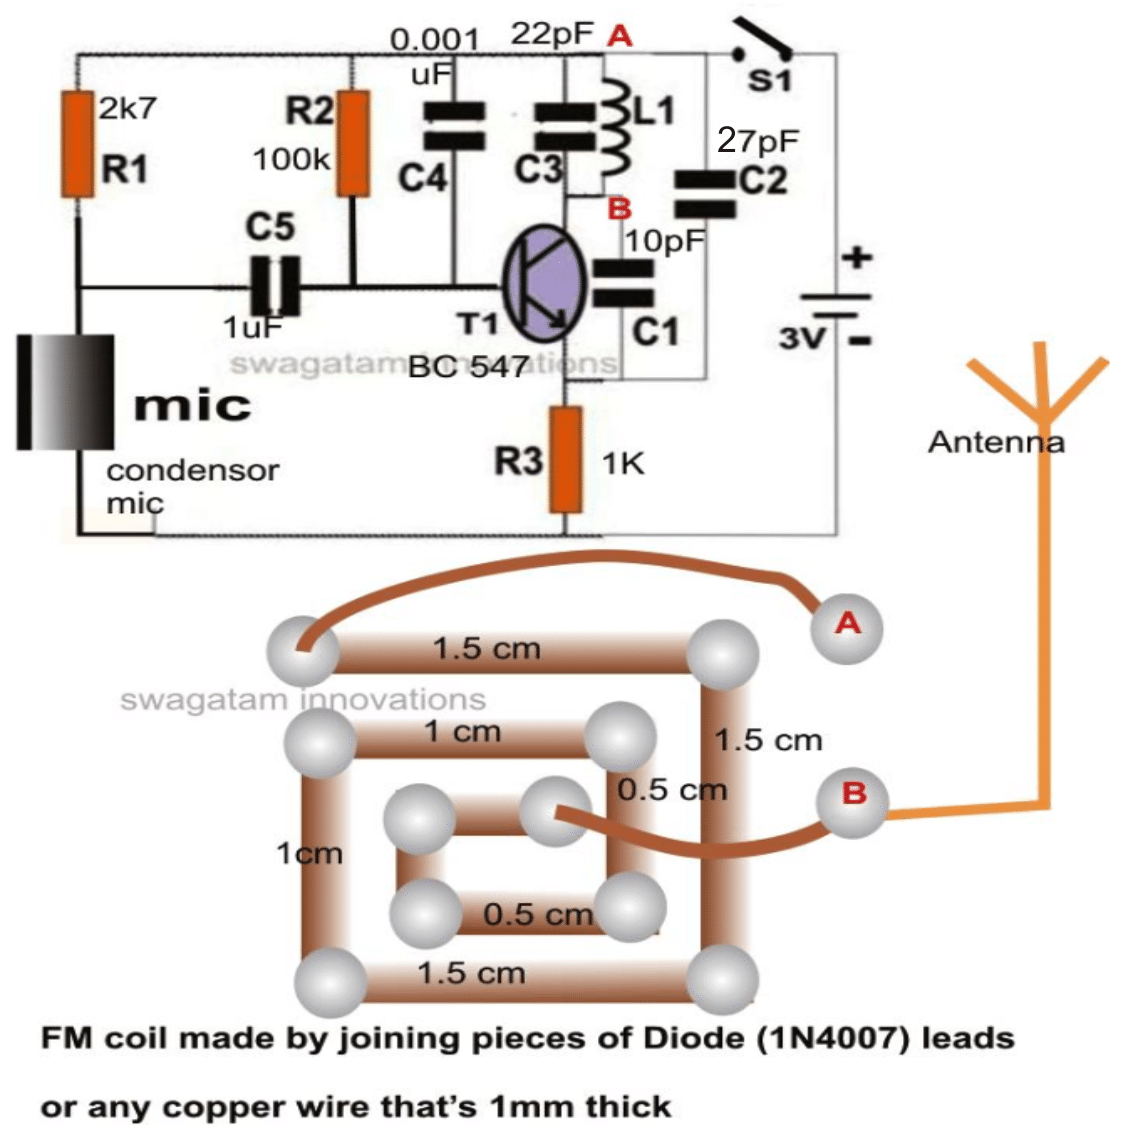 fm wireless microphone design and functioning